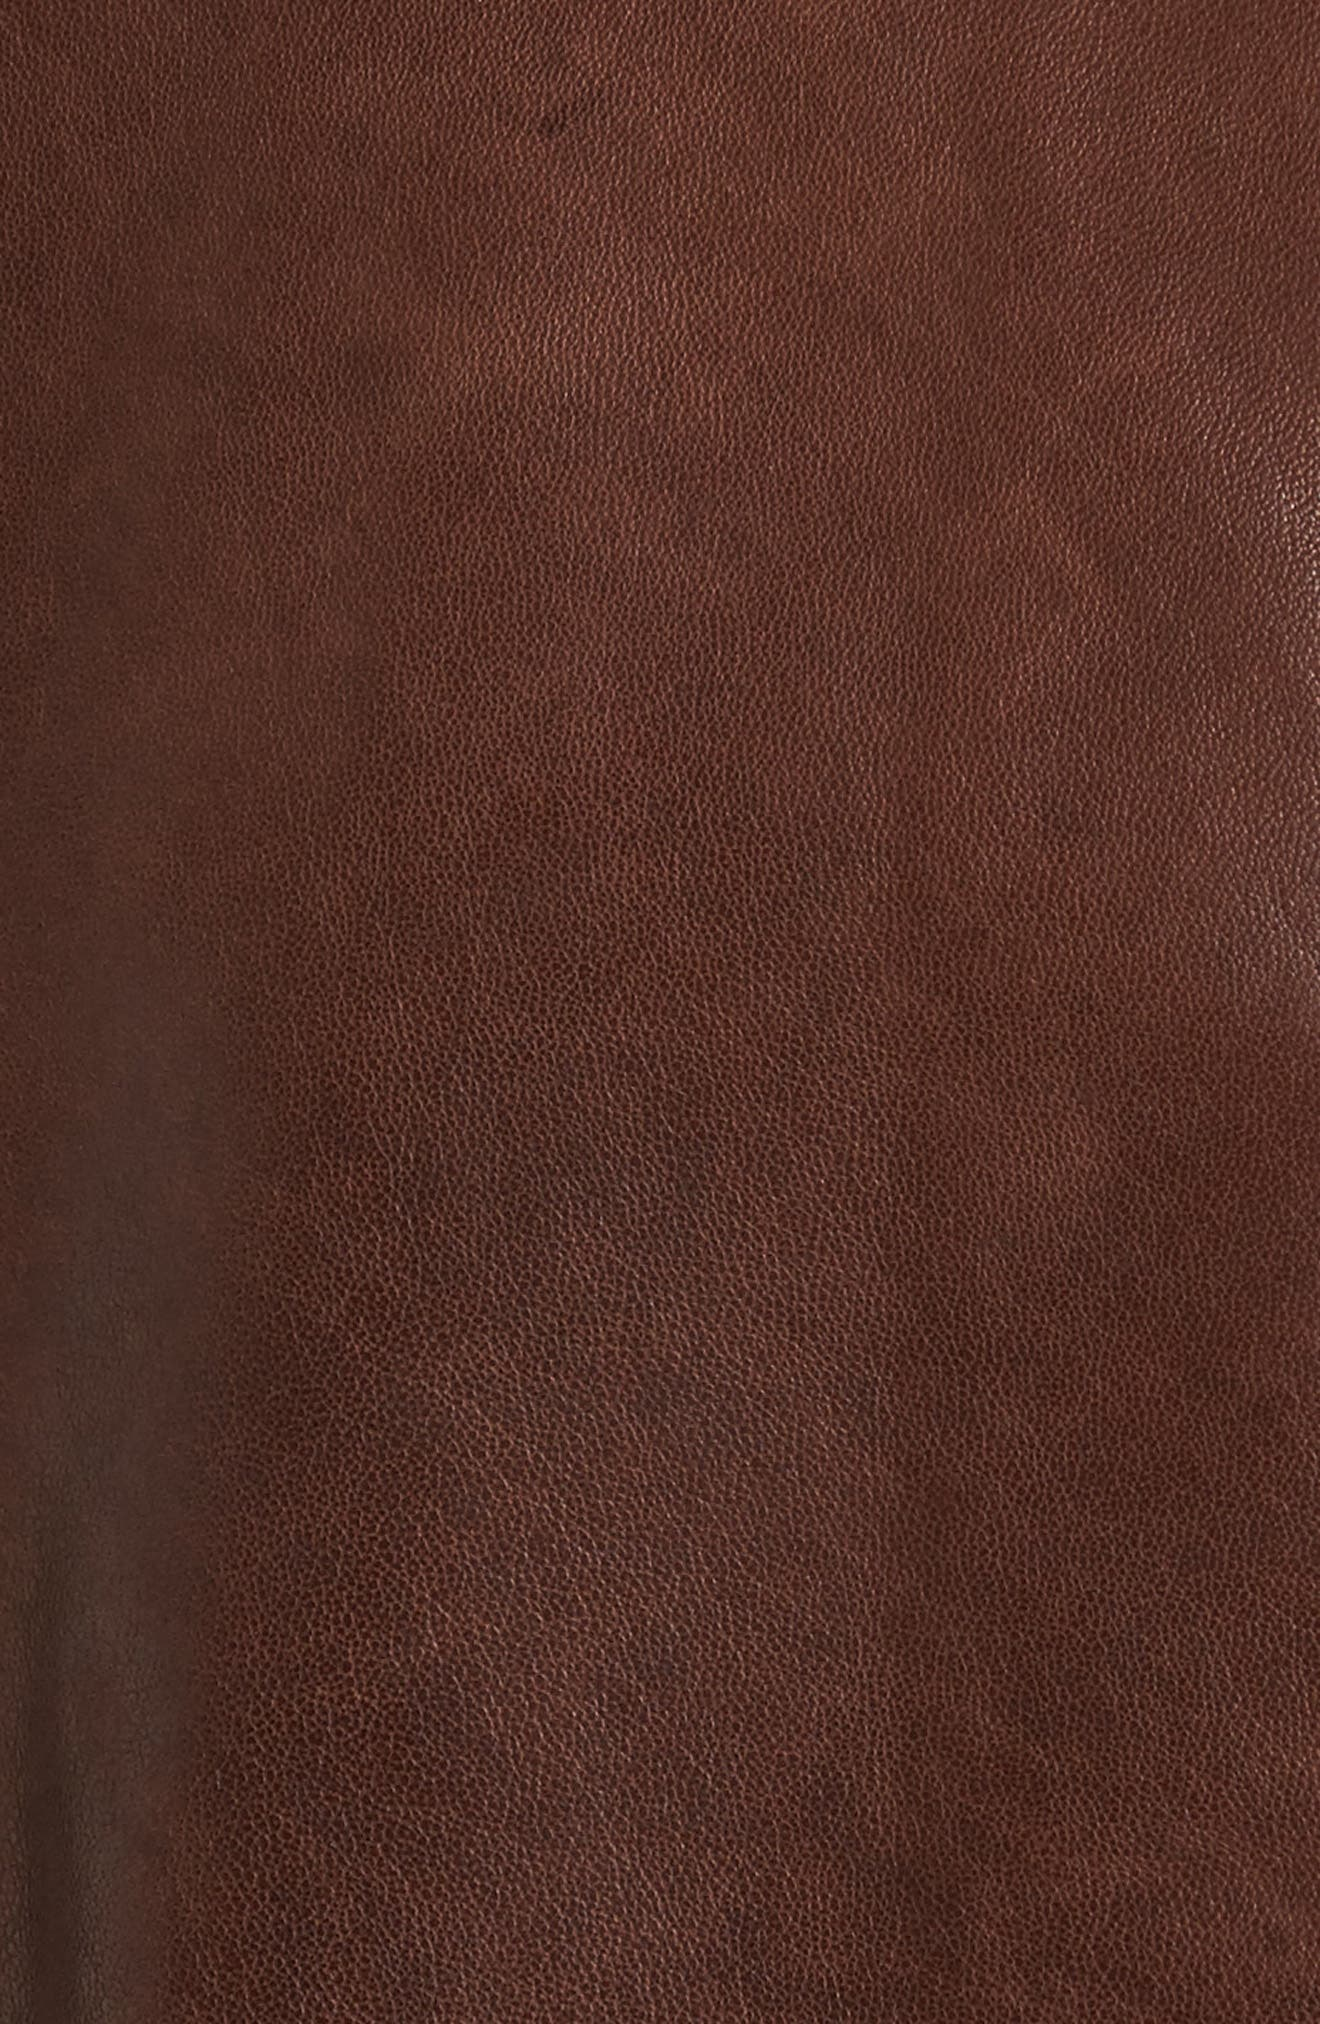 Leather Panel Nylon Jacket,                             Alternate thumbnail 5, color,                             Brown